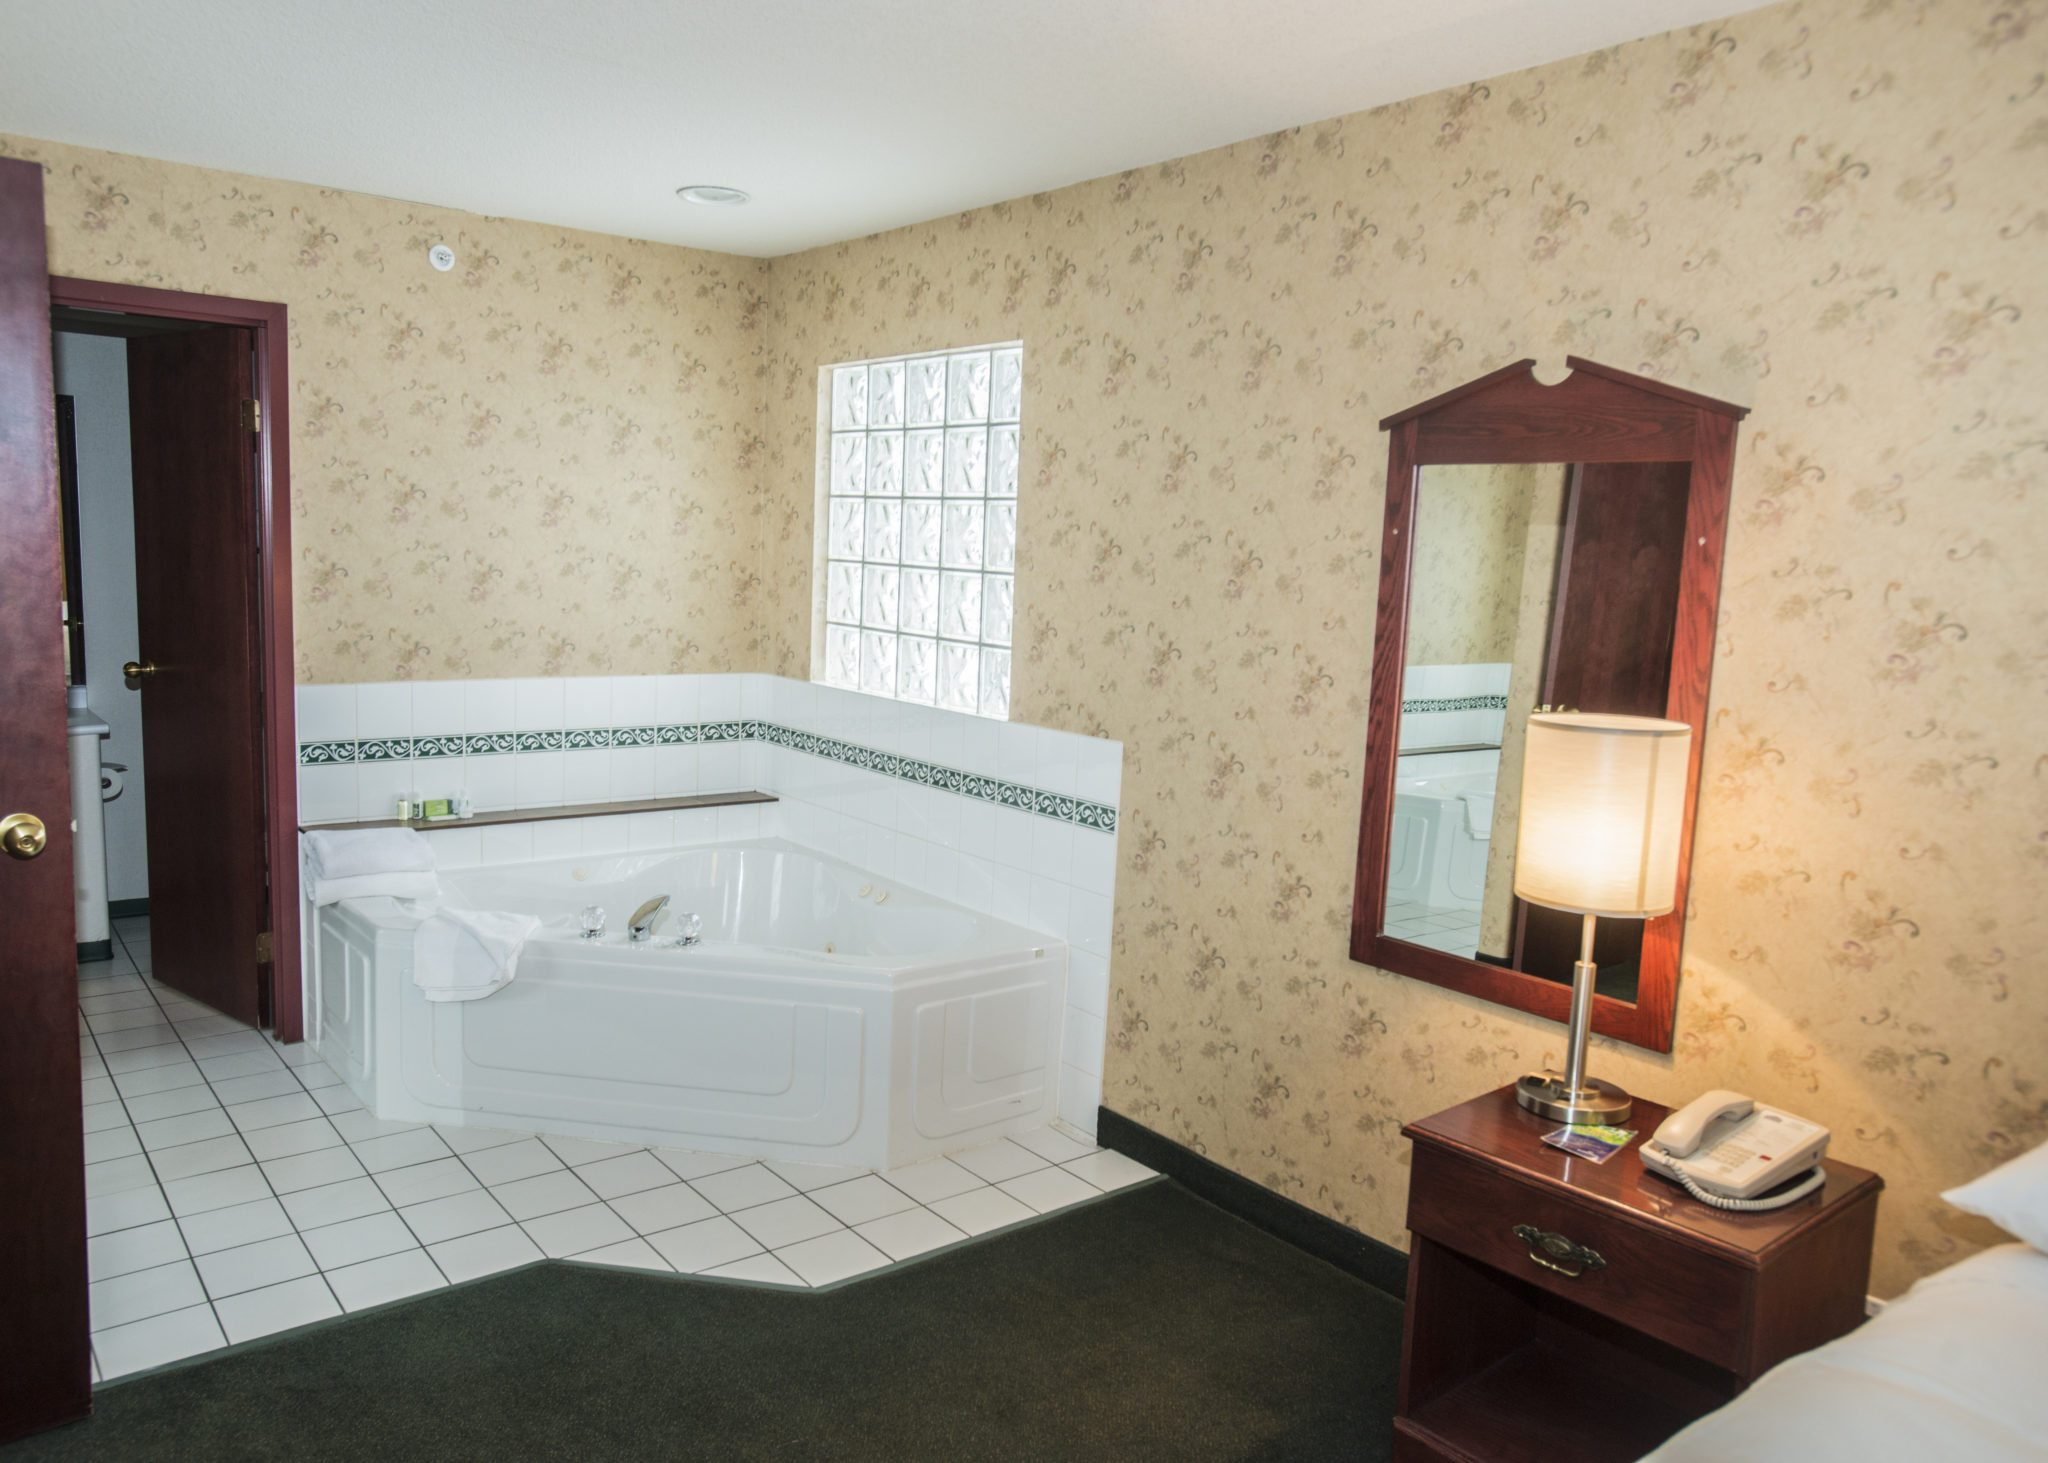 Hotels In Prince George Bc With Jacuzzi